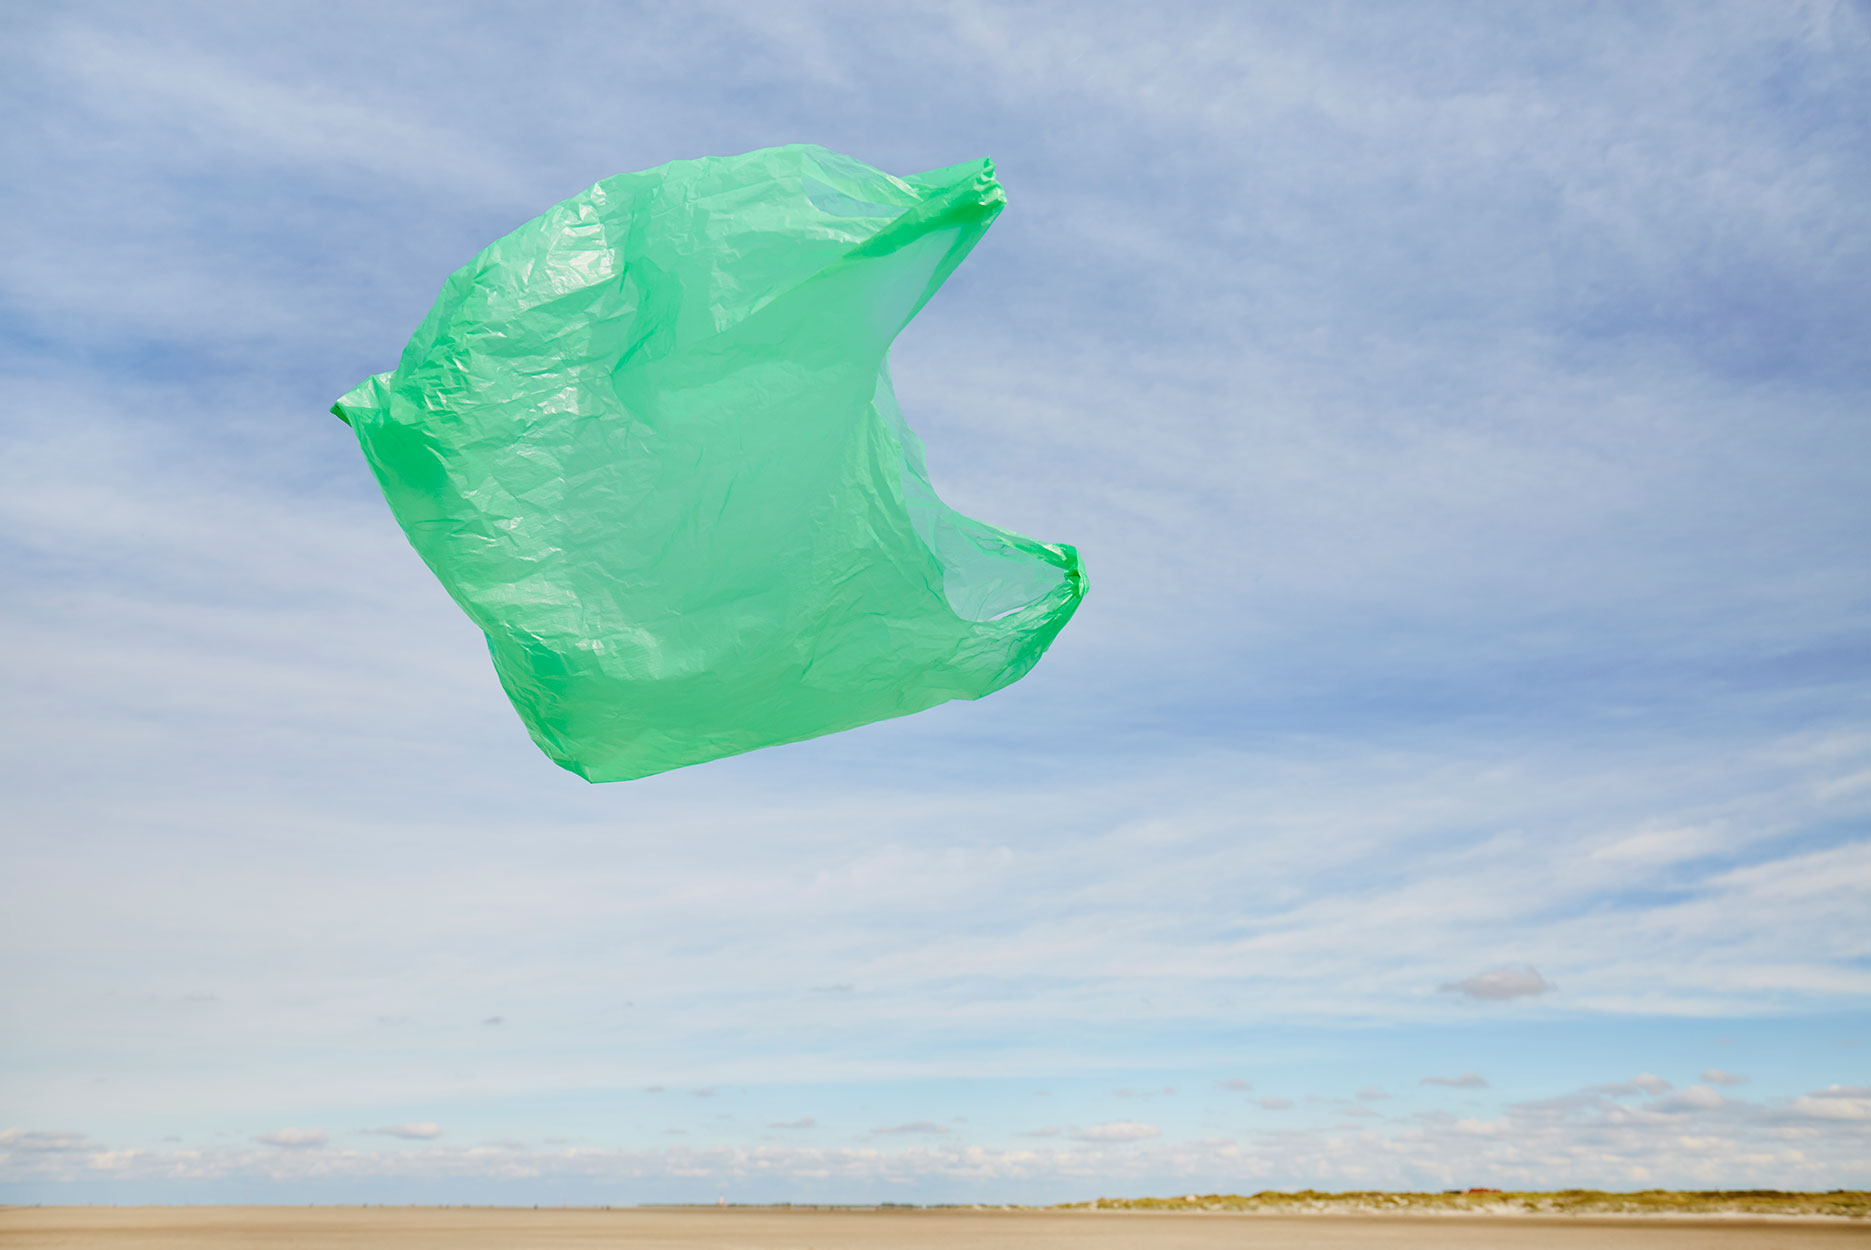 Plastic bag flying in the wind on the beach against sky